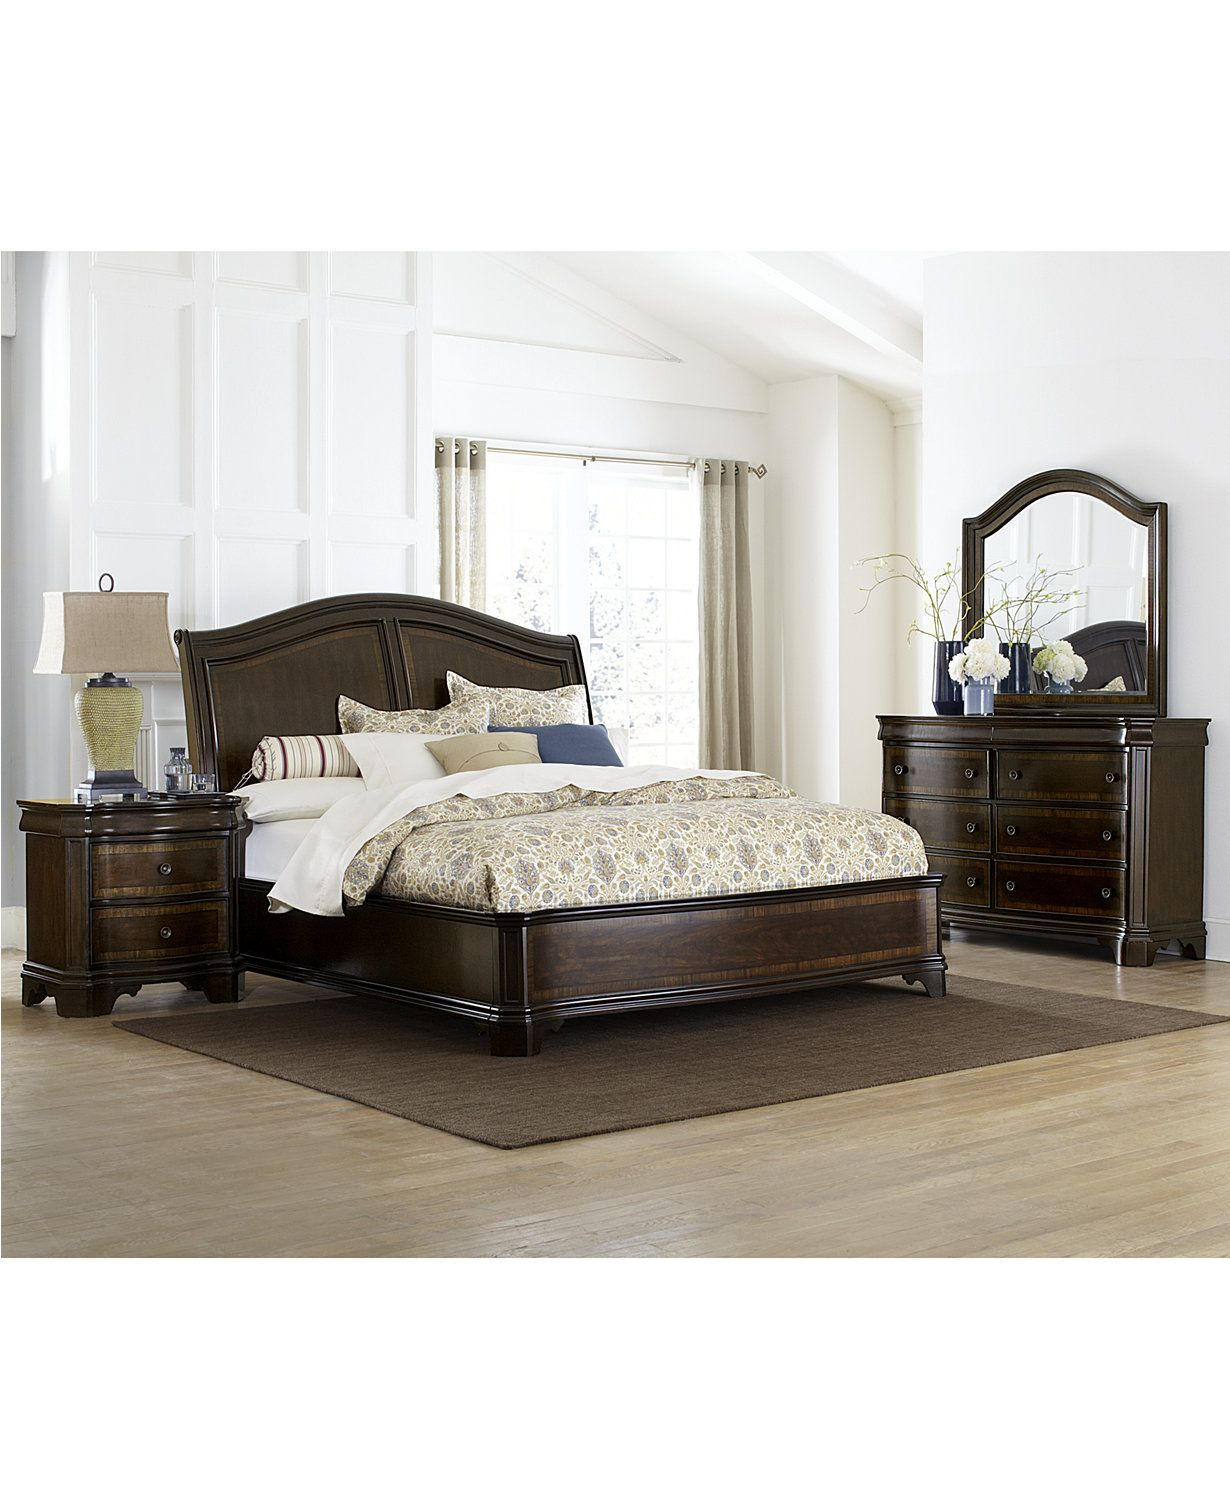 Delmont Bedroom Furniture Collection Only At Macy S Furniture Macy S Macys Bedroom Furniture Bedroom Collections Furniture Bedroom Furniture